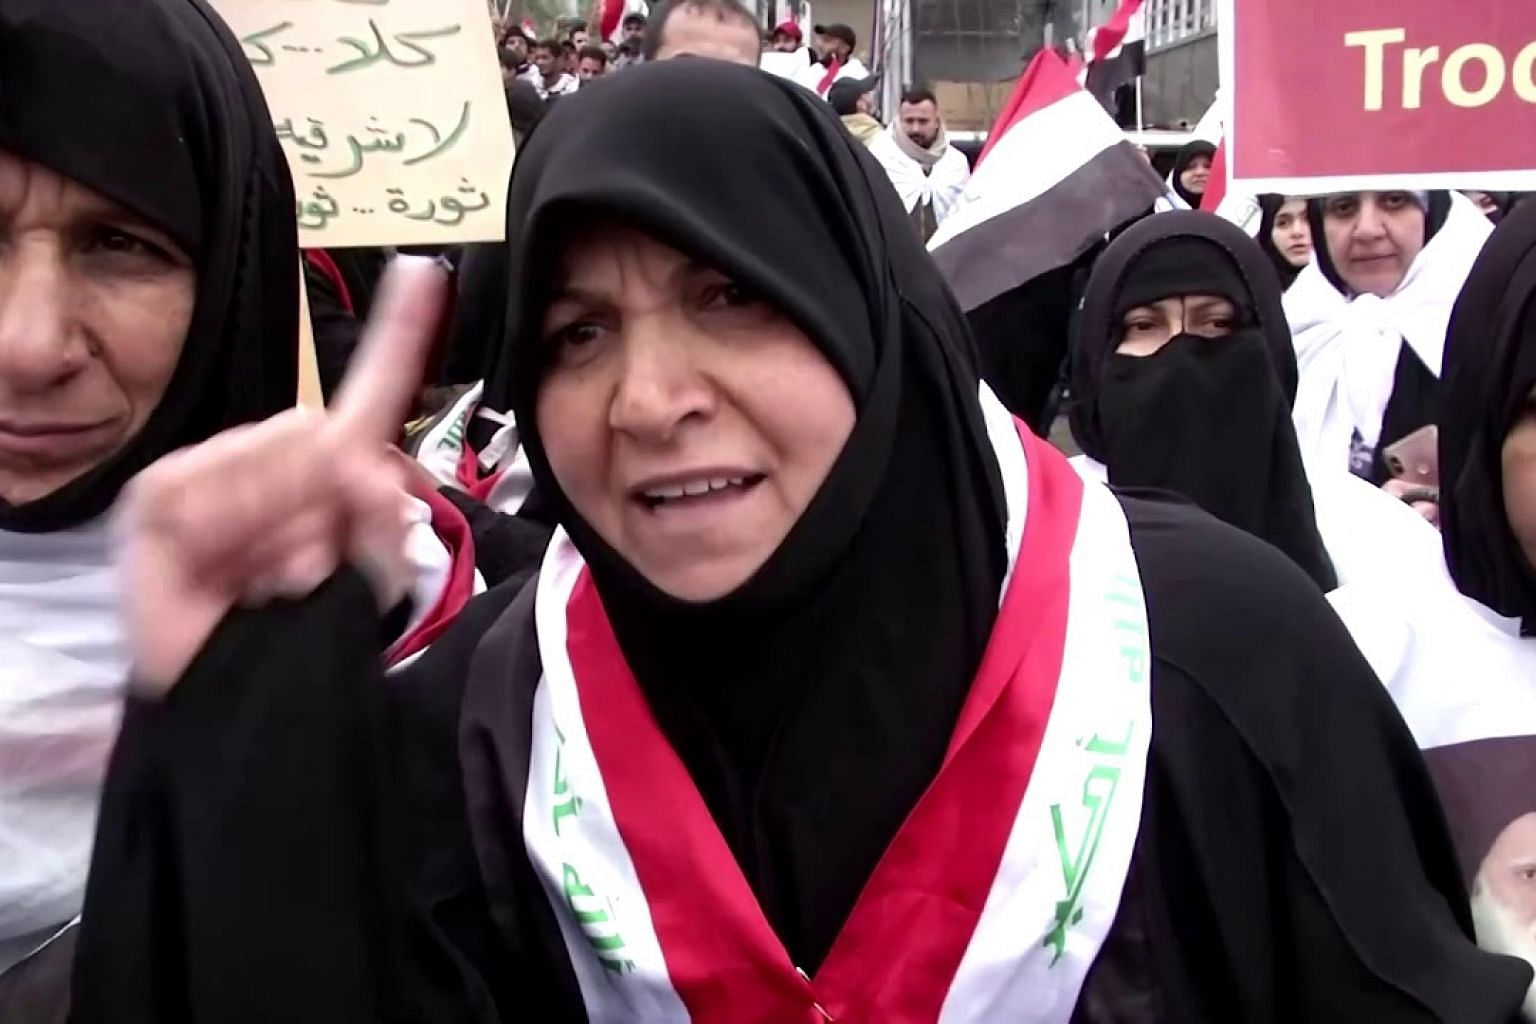 'No to America': Thousands of Iraqis rally against US military presence